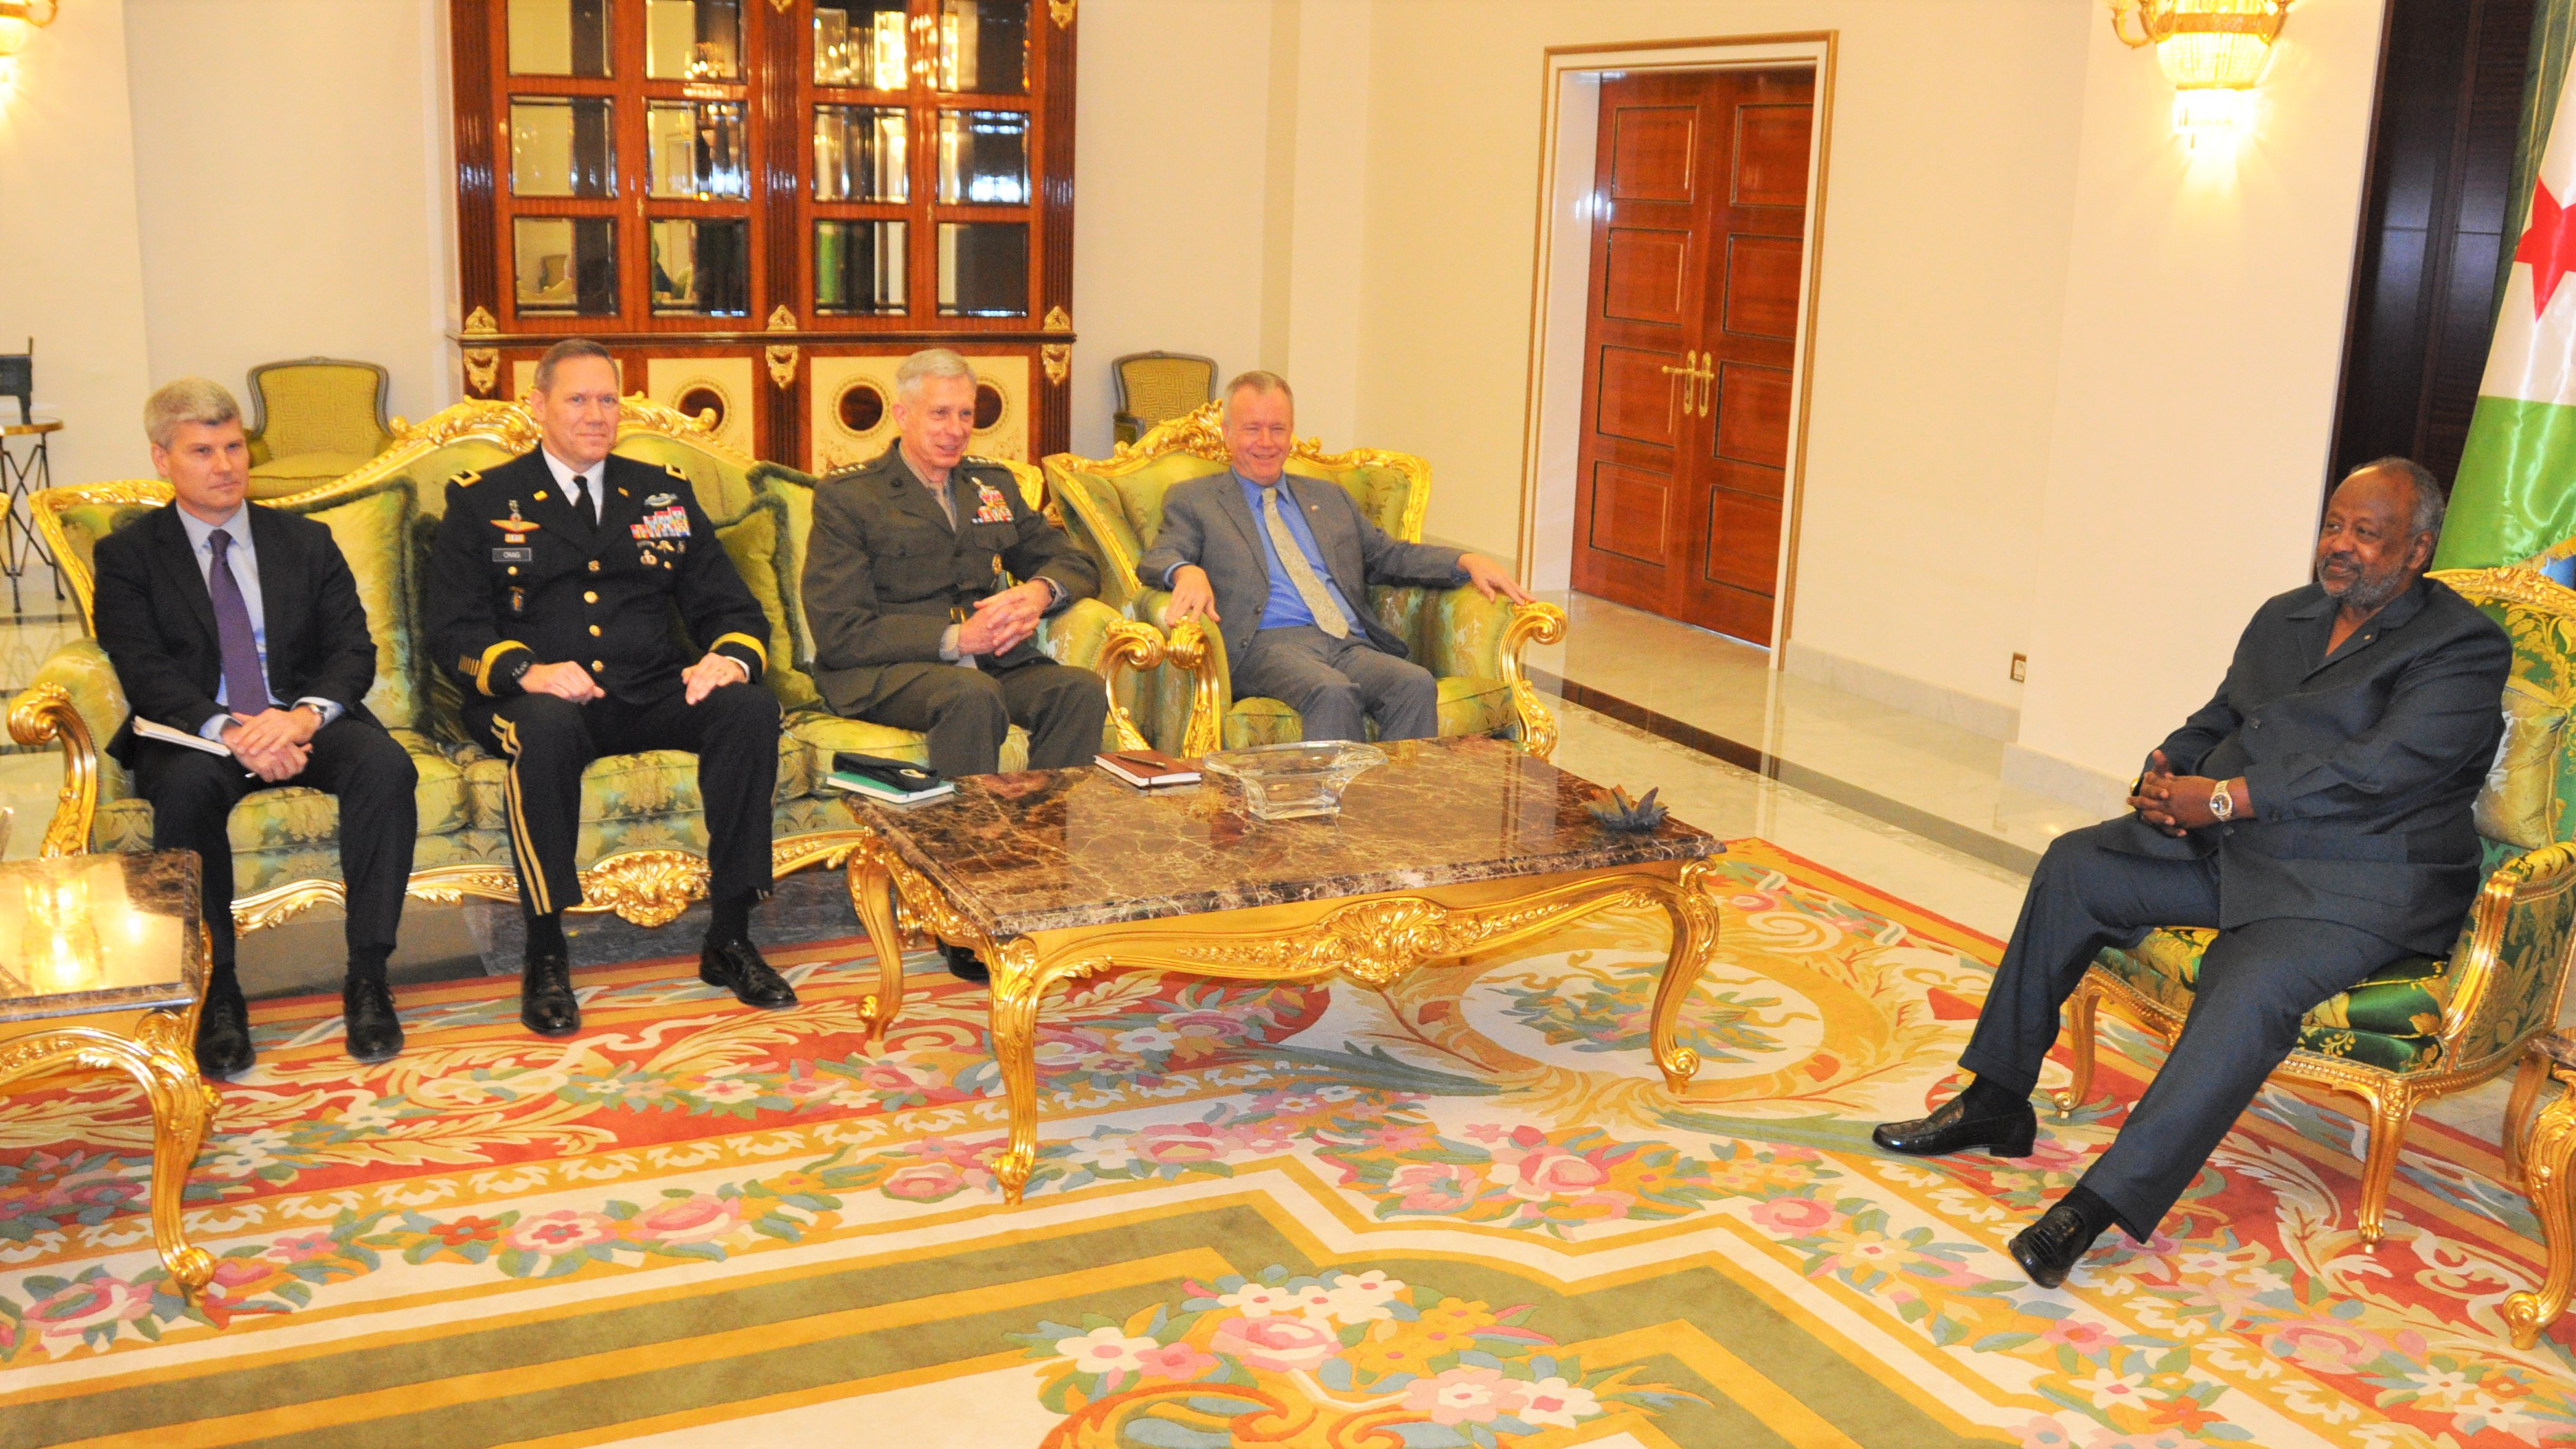 "DJIBOUTI CITY, Djibouti—U.S. Ambassador to Djibouti Larry André and Gen. Thomas D. Waldhauser, commander of United States Africa Command (AFRICOM), met with senior Djiboutian officials, including President Ismail Omar Guelleh, on Nov. 29, 2018, in Djibouti City, Djibouti.   ""We have a strong, cooperative relationship with the Republic of Djibouti,"" said Waldhauser, ""and we view security and access to Djibouti as a top priority.""